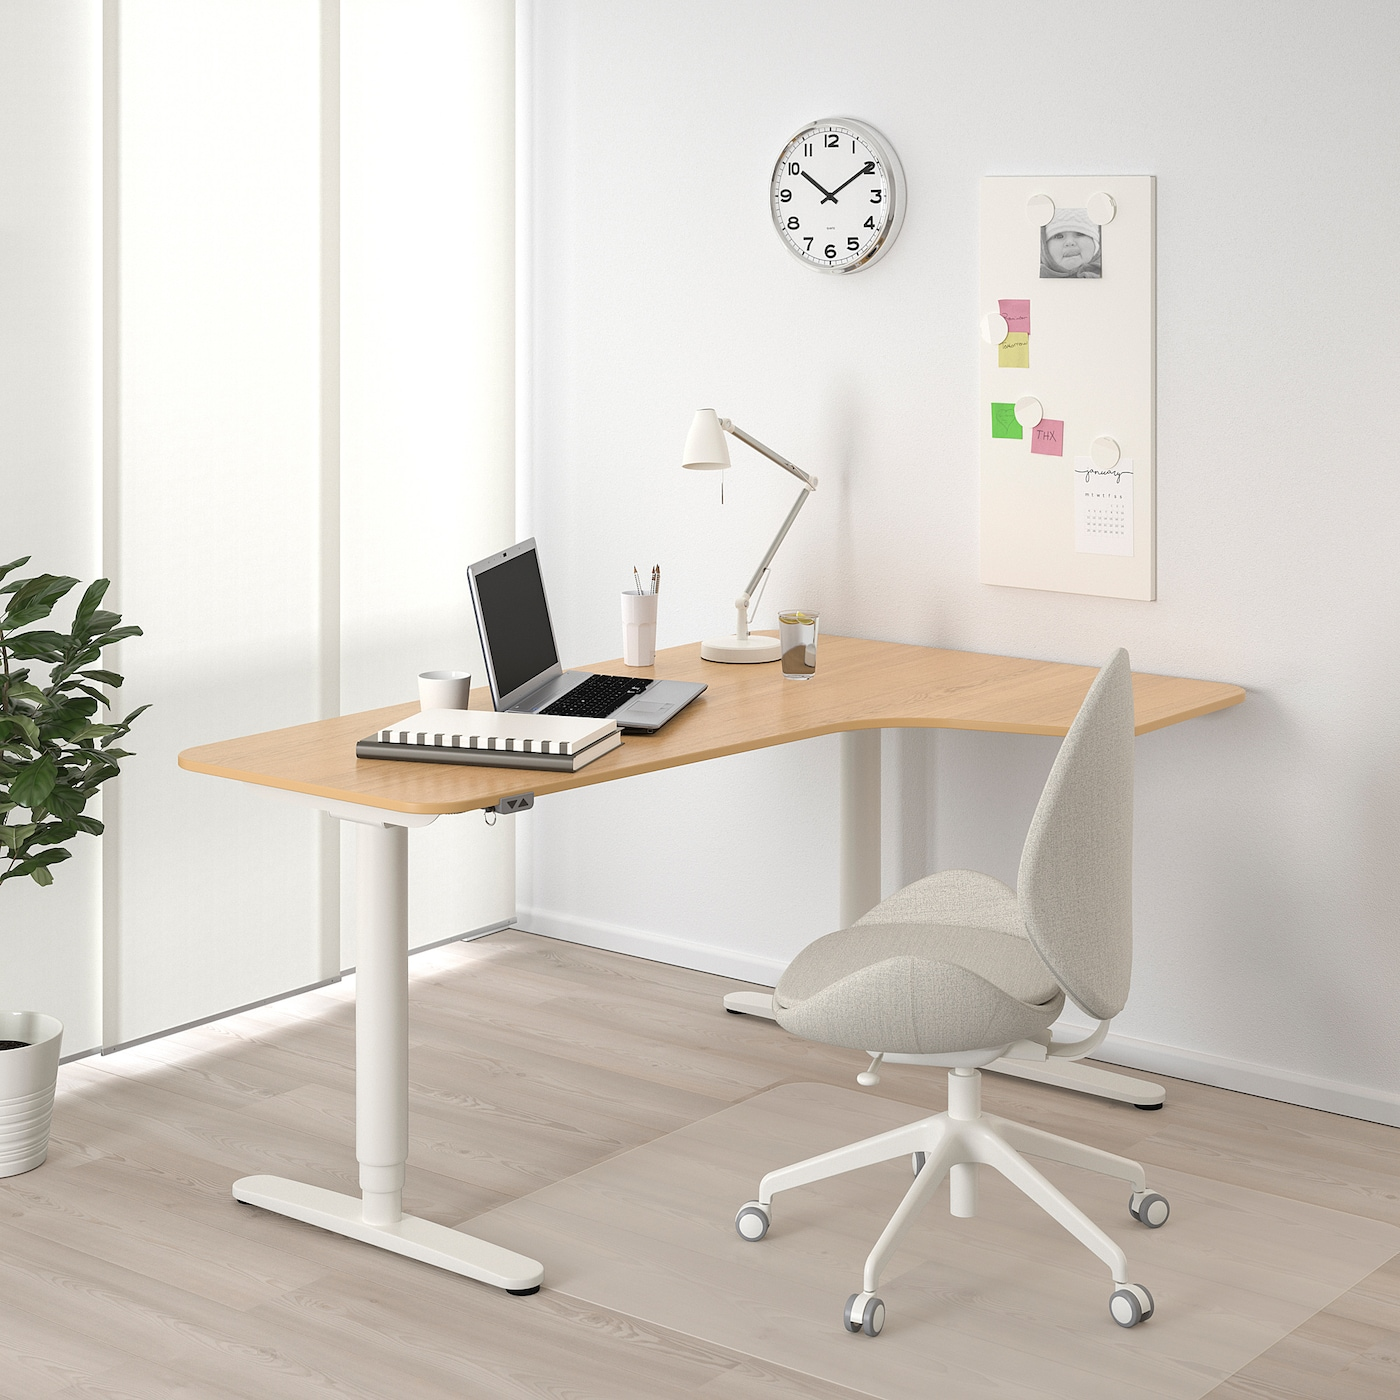 BEKANT Corner desk right sit/stand, oak veneer/white, 160x110 cm